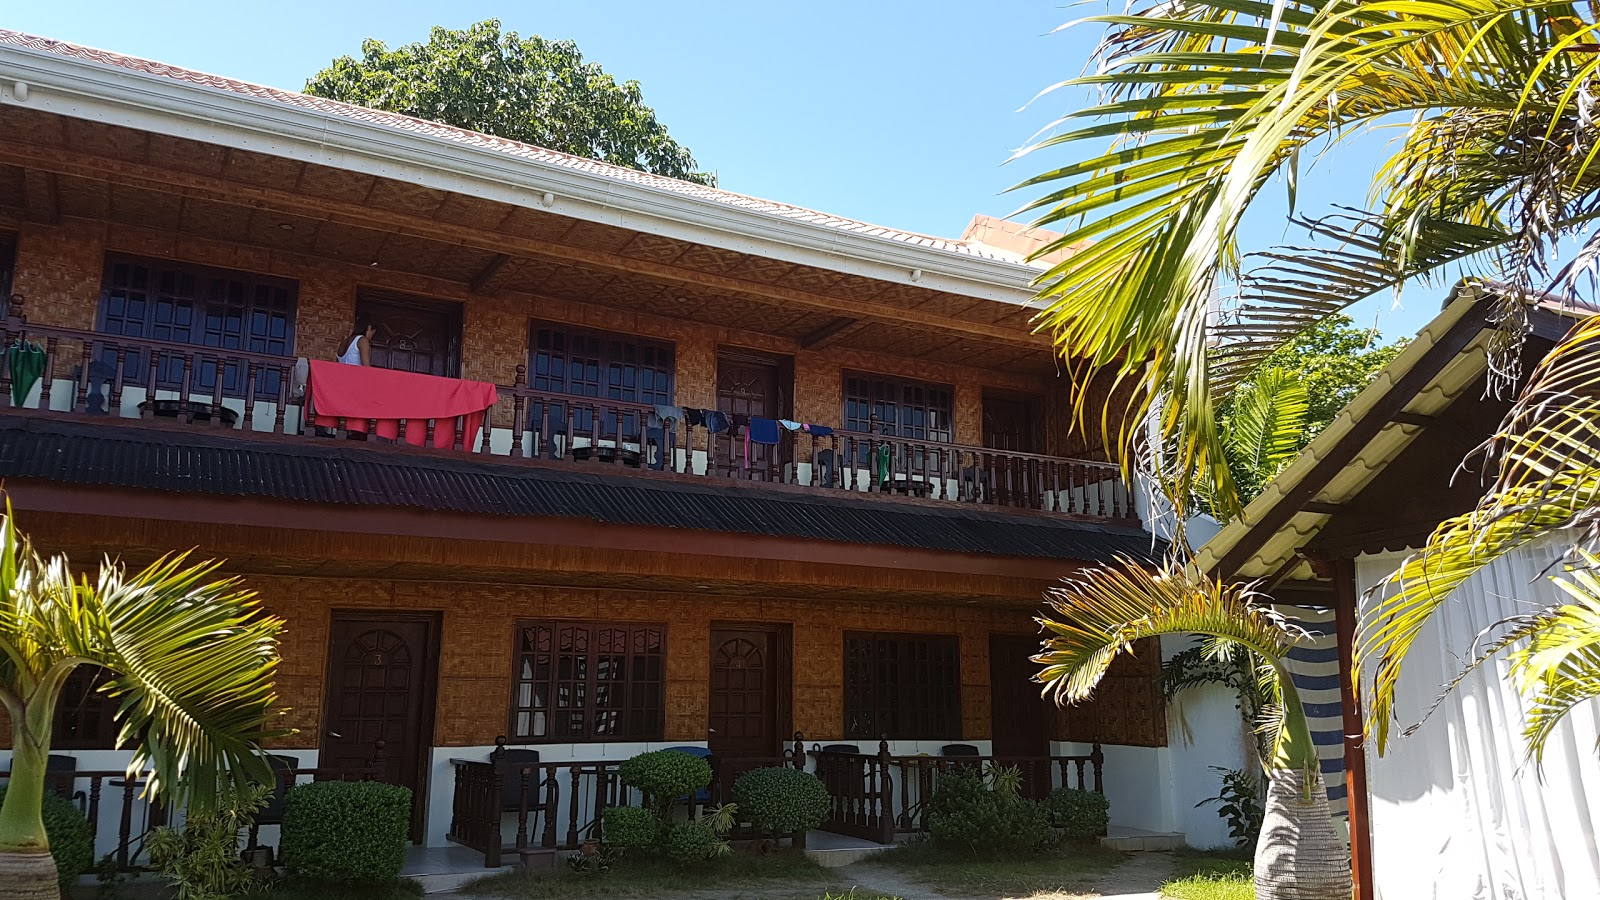 Adelaida Pensionne Hotel Coucou Bar Bantayan Island Hotel Restaurant Around Guides